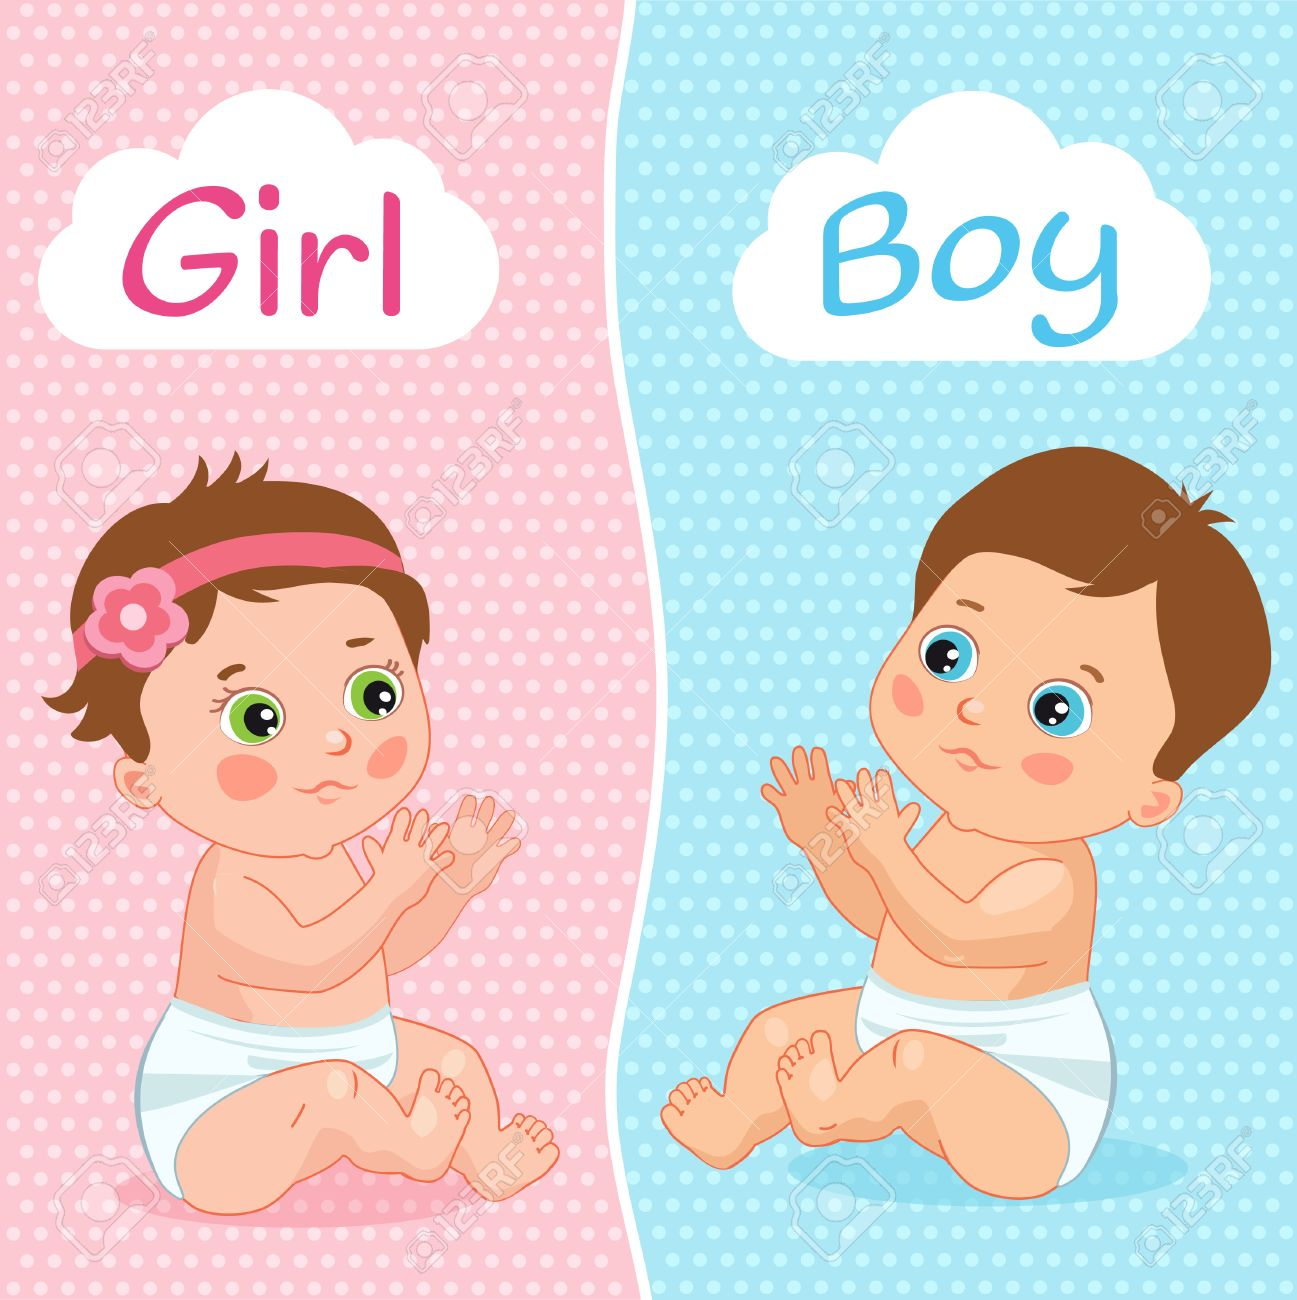 Baby Boy And Baby Girl Vector Illustration. Two Cute Cartoon...